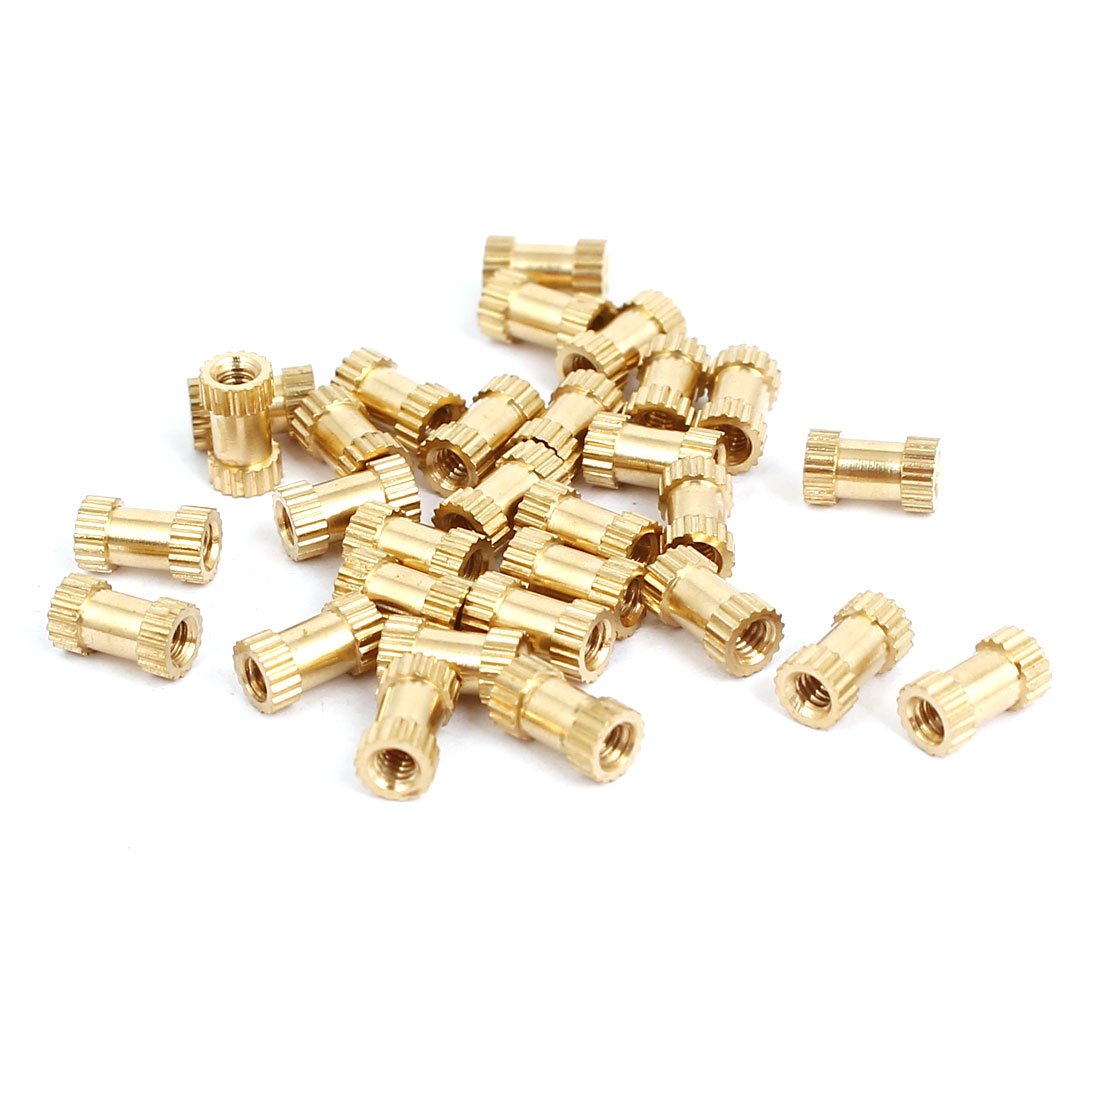 M2x6mmx3.5mm Female Threaded Brass Knurled Insert Embedded Nuts Gold Tone 30pcs